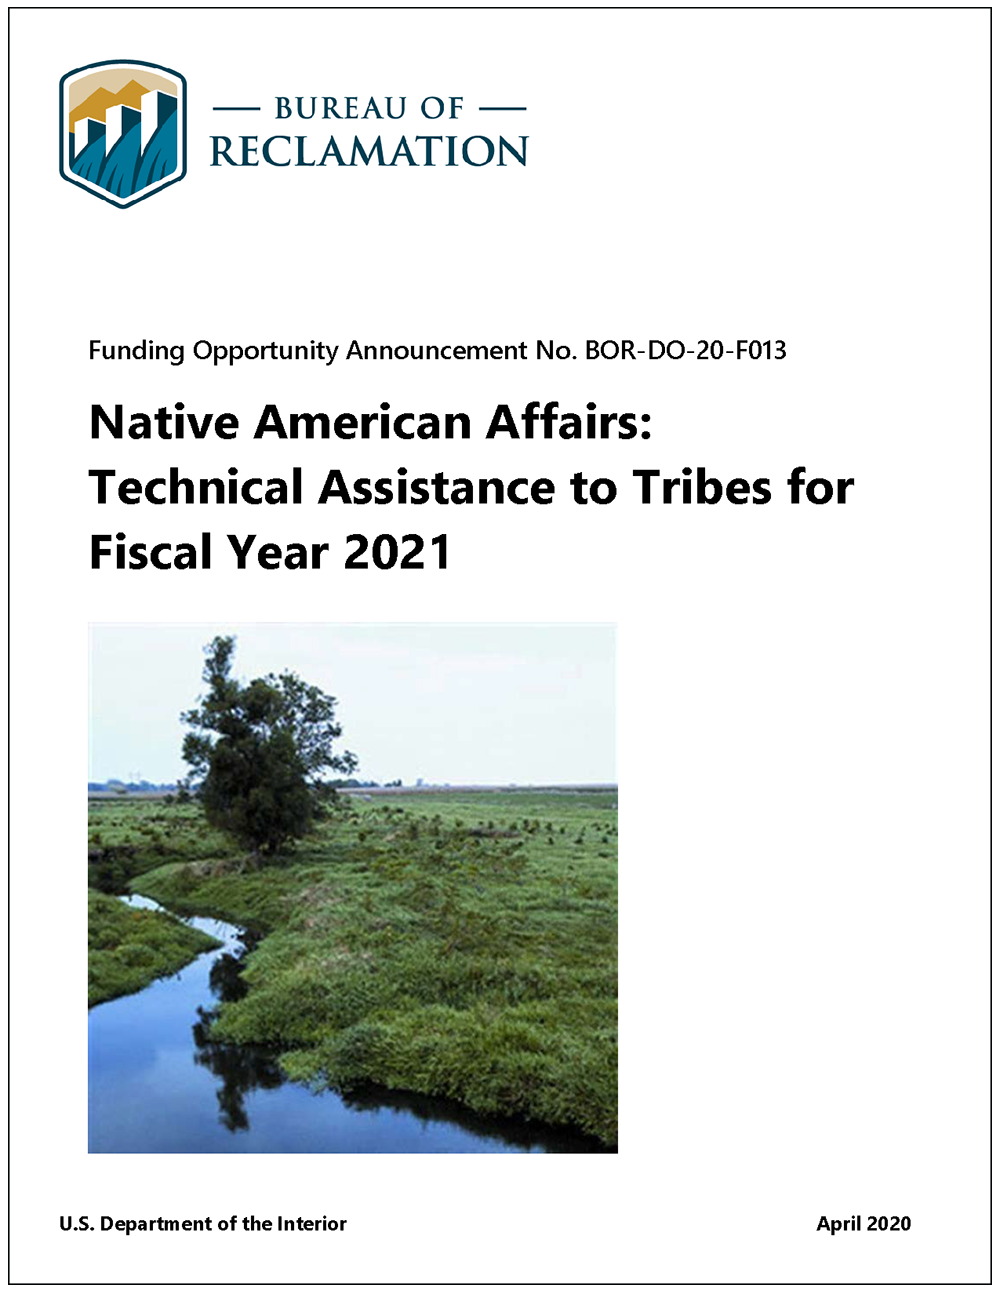 Native American Technical Assistance Funding Opportunity, BOR-DO-20-F013